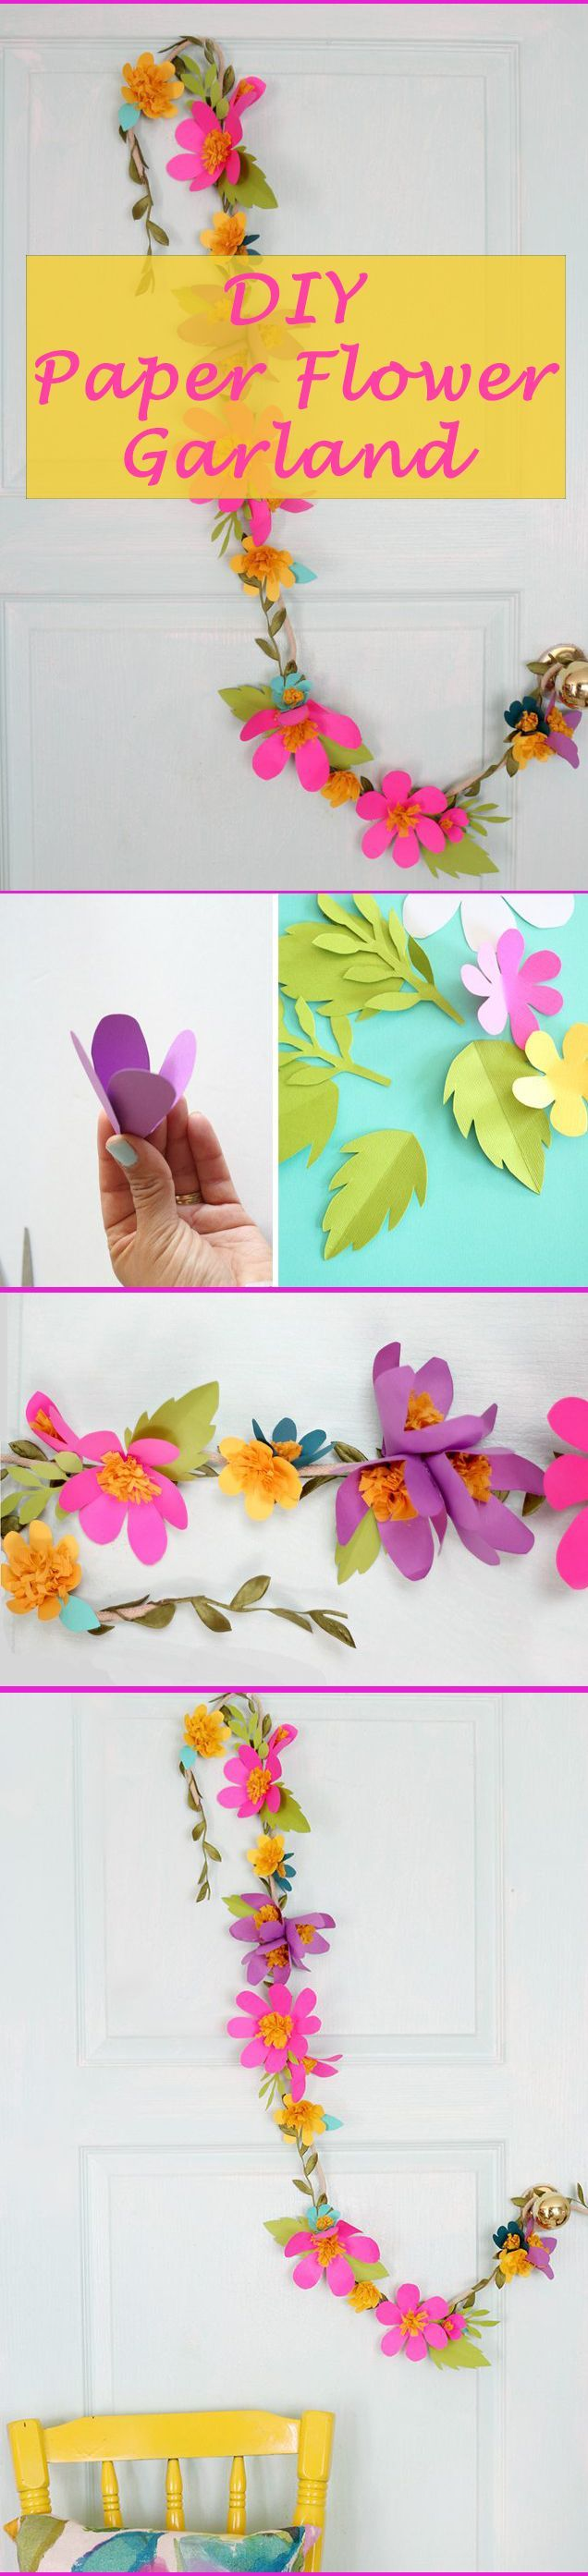 Small paper flowers craft - Add Bright Colorful Decor With This Paper Flower Garland A Great Addition For Little